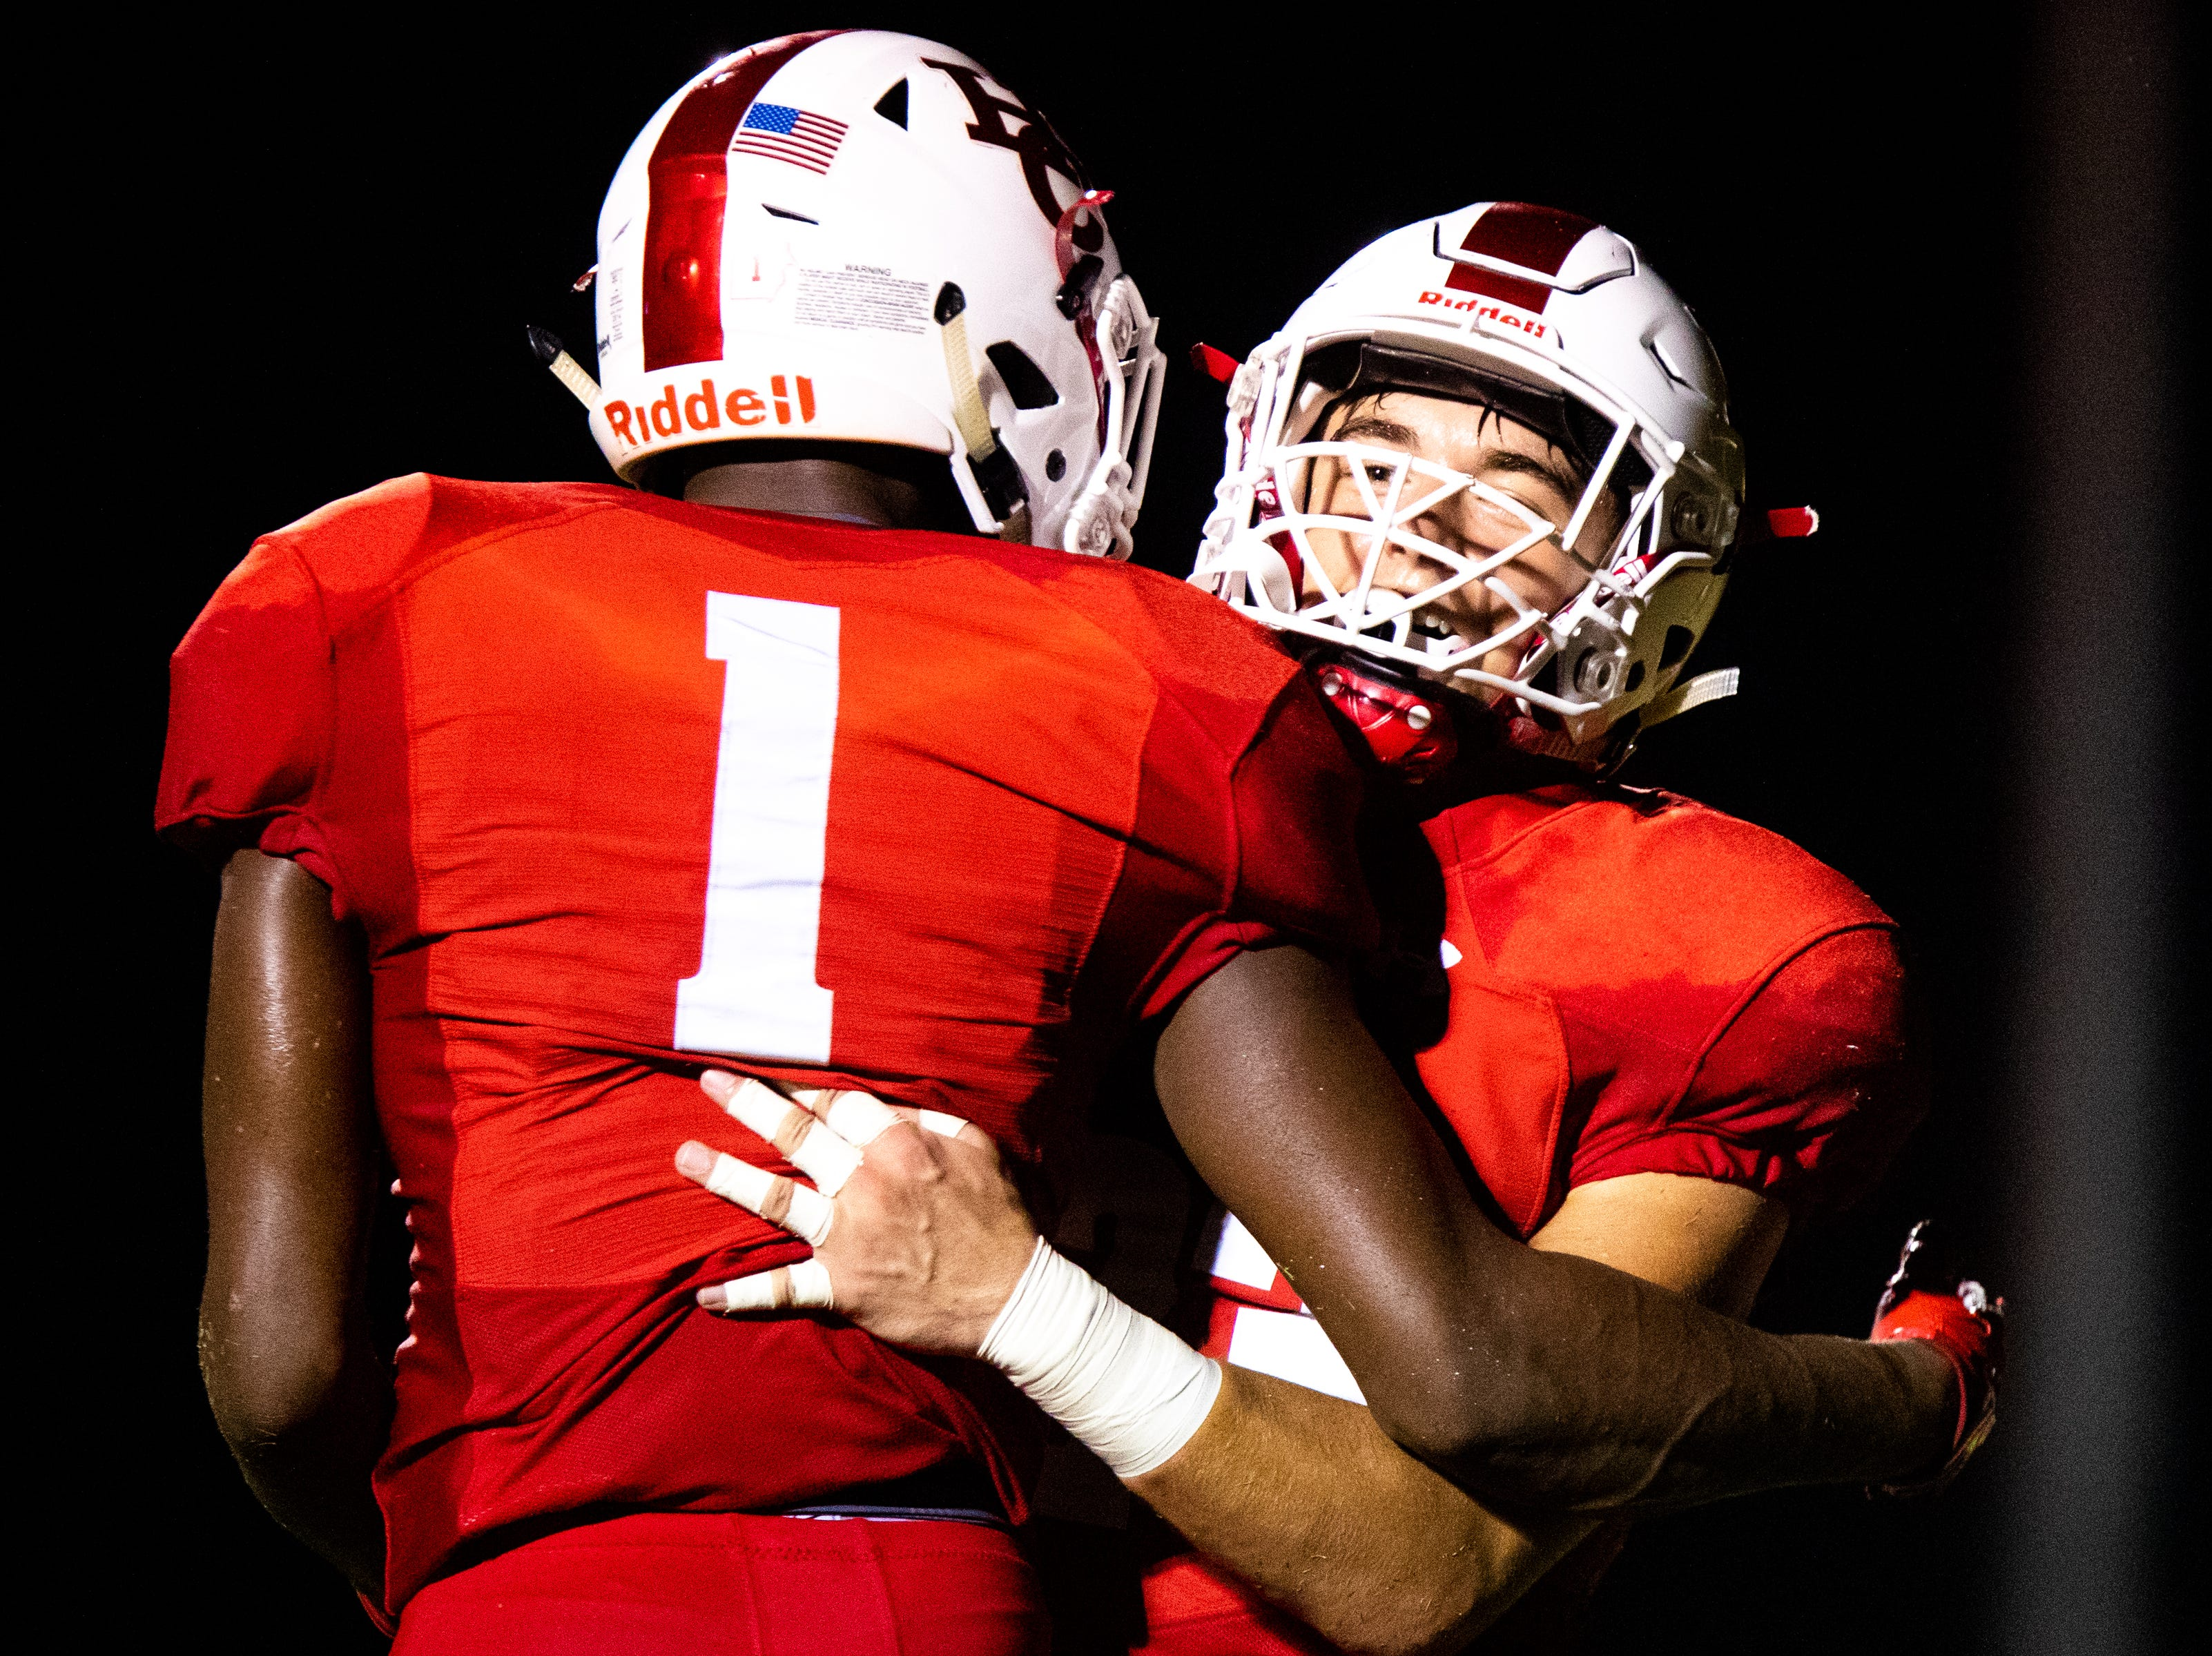 Gavin Gordon (23) and Jawon Odoms (1) of Henry County celebrate after Clarksville High's fourth down during the first half at Henry County Friday, Sept. 14, 2018, in Paris, Tenn.